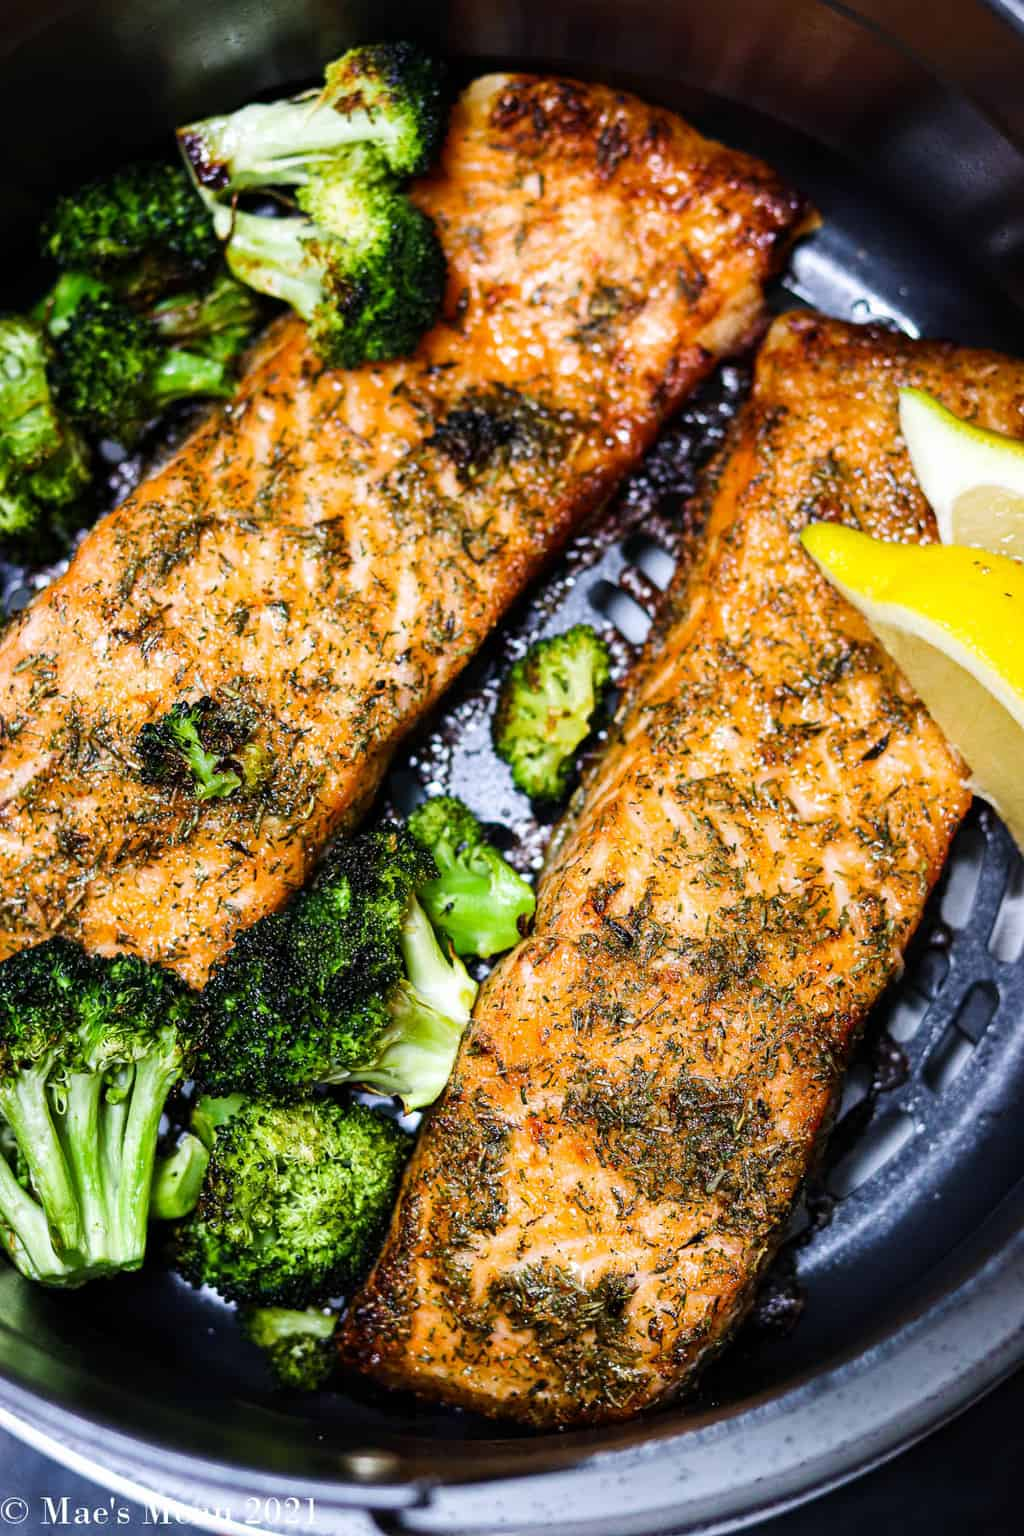 Two cooked pieces of air fryer salmon in a basket with broccoli and lemon